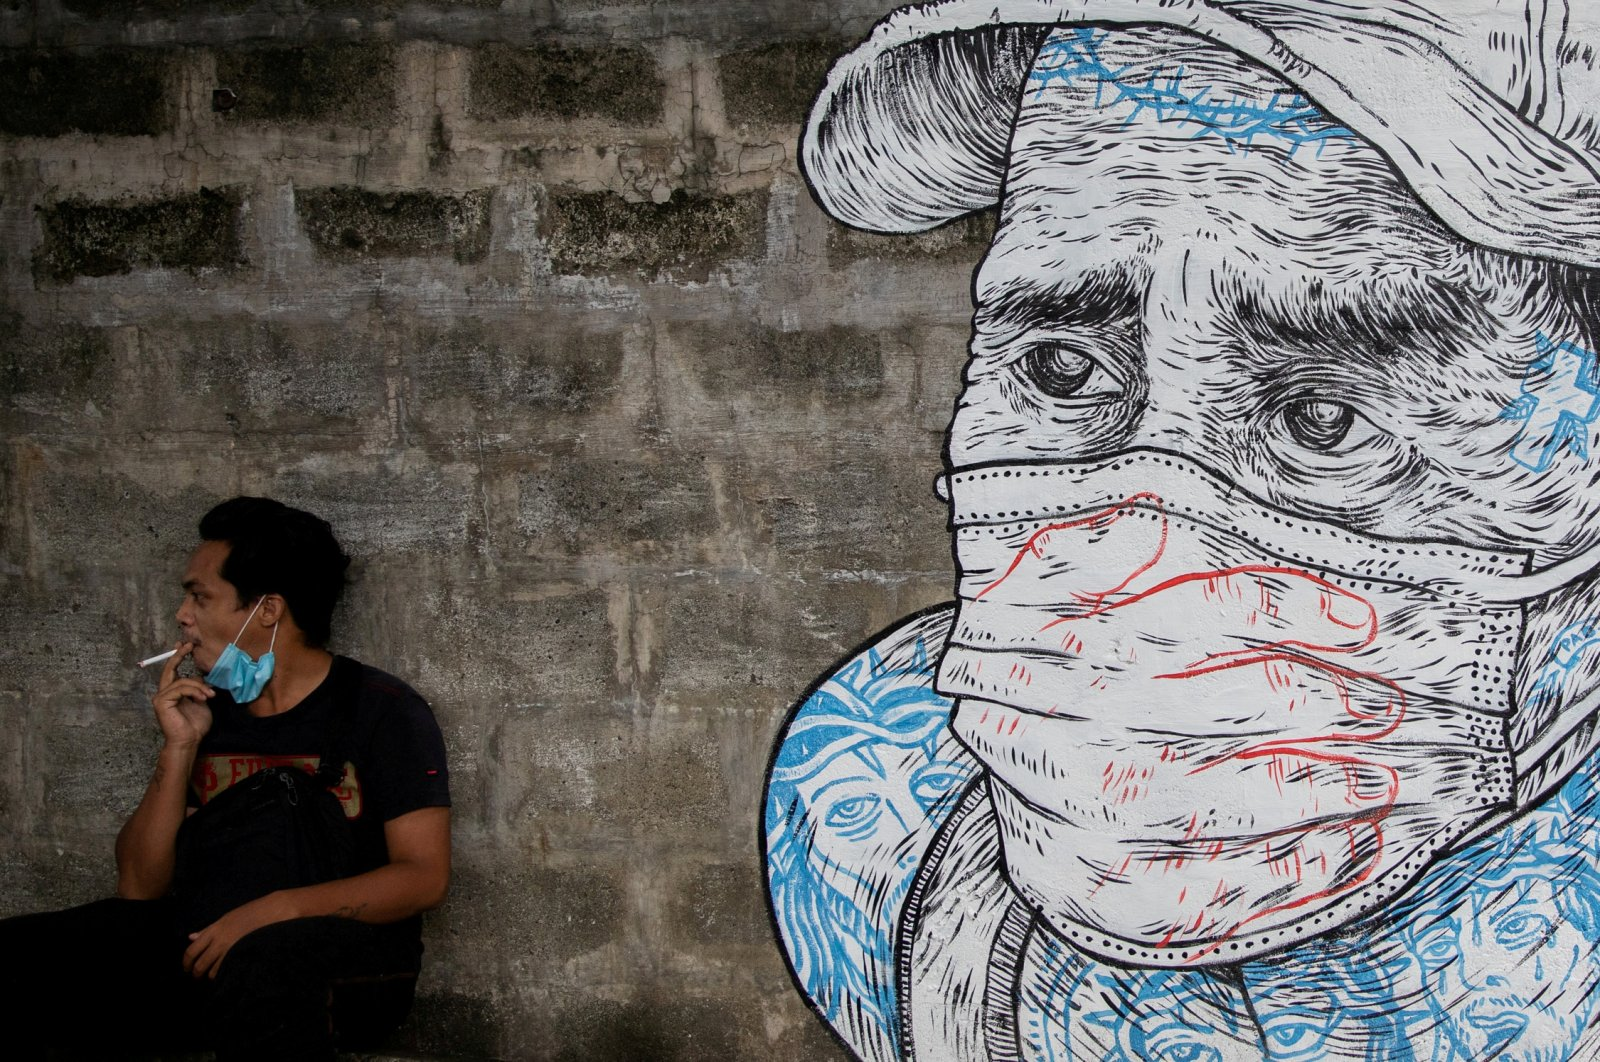 A man smokes a cigarette next to a mural of a man wearing a protective mask amid the COVID-19 outbreak in Quezon City, Metro Manila, Philippines, July 30, 2020. (REUTERS Photo)